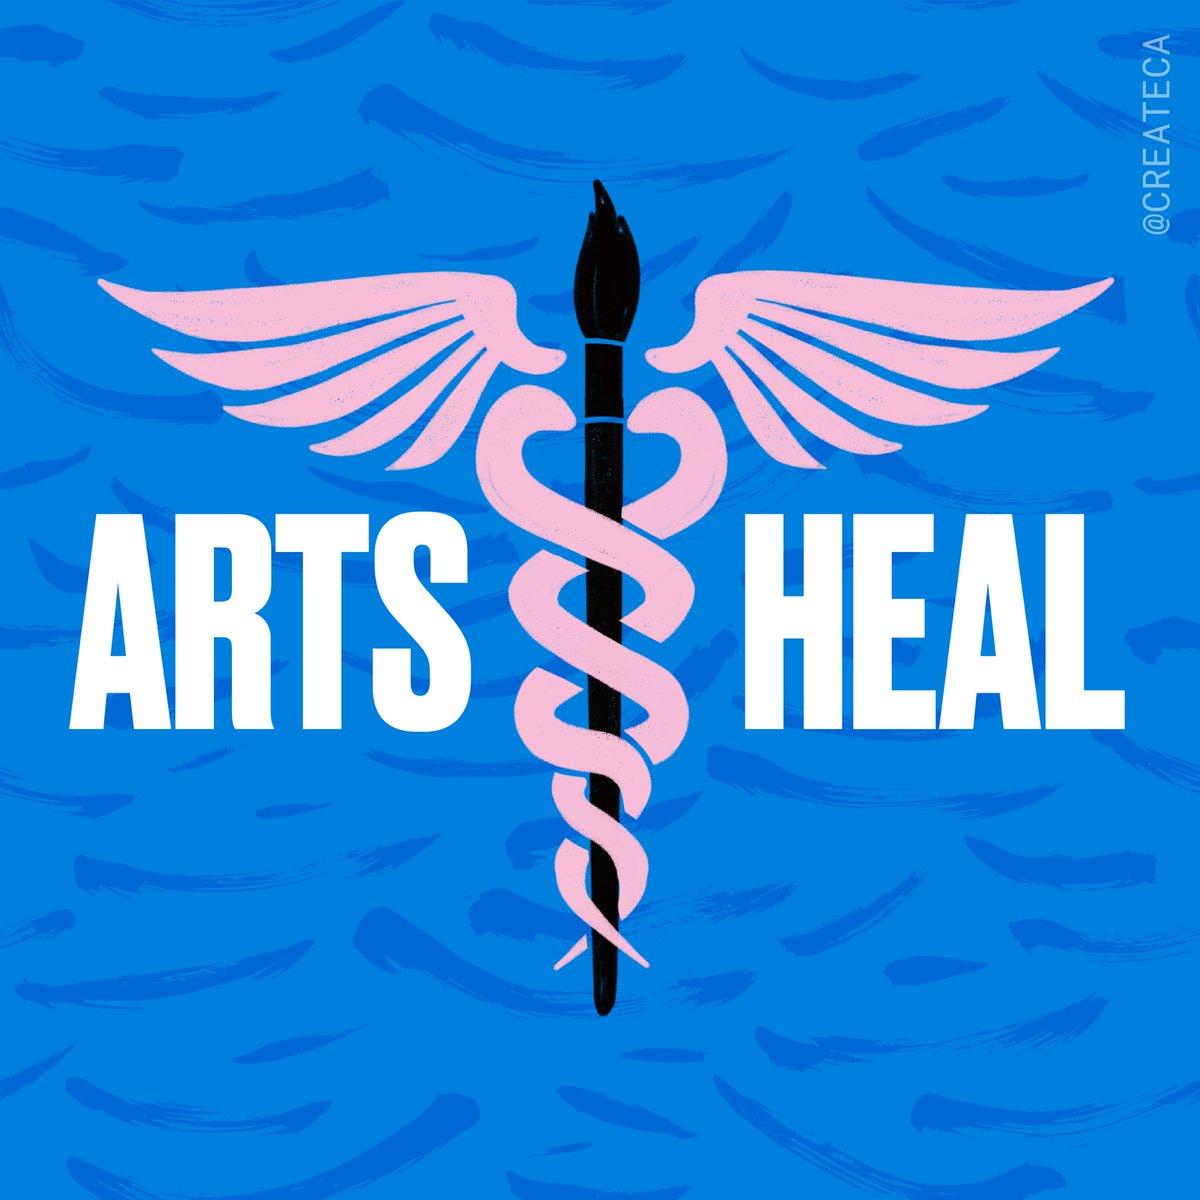 As 80% of students report worsening mental health during the pandemic, arts education is proven to decrease stress and anxiety.  Learn more about the arts & social-emotional learning at https://t.co/JuWheavAbI #ArtsEdRebuilds @create_ca https://t.co/VNTM1tr9wP